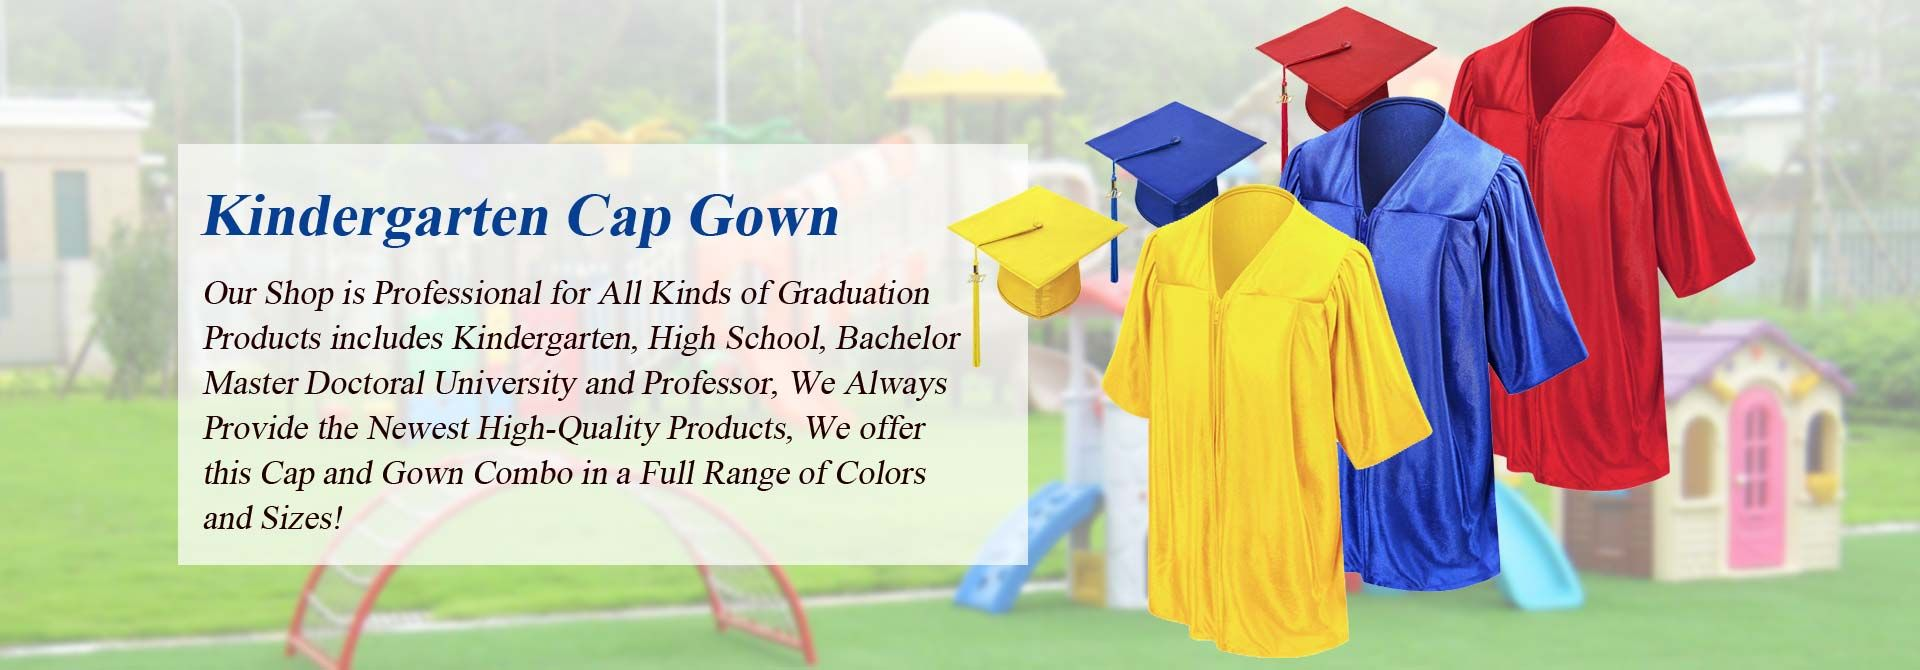 http://www.lescapsgown.com/supply/graduation-gown -Cap Gown ...